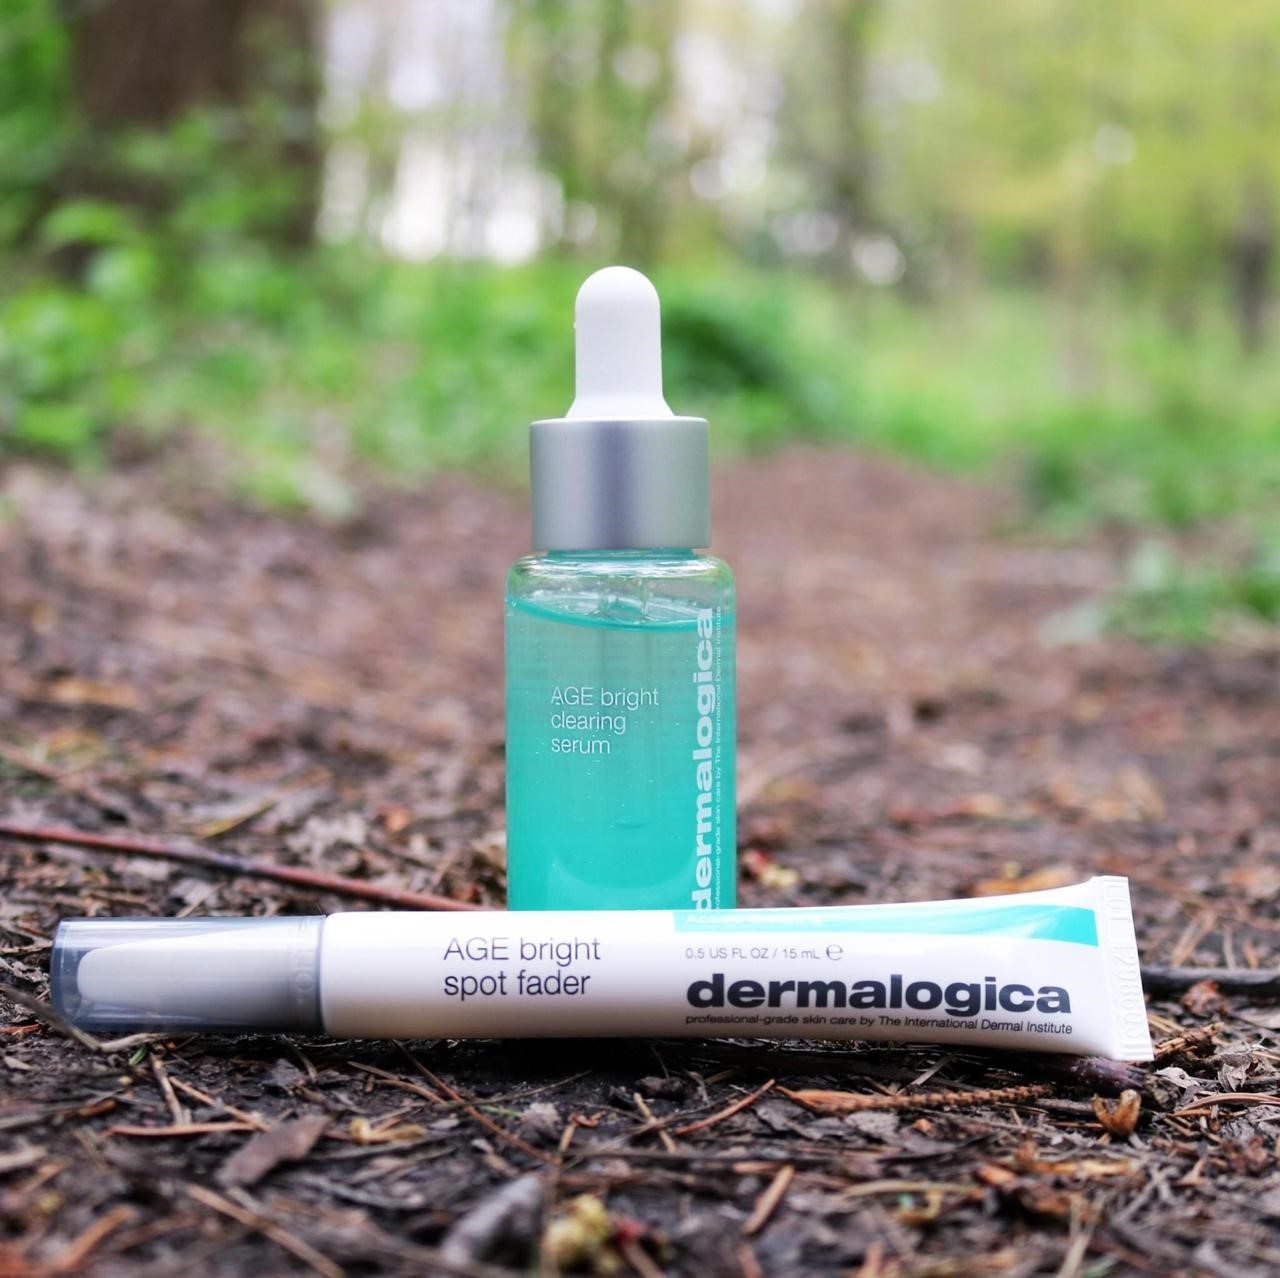 Dermalogical facial products